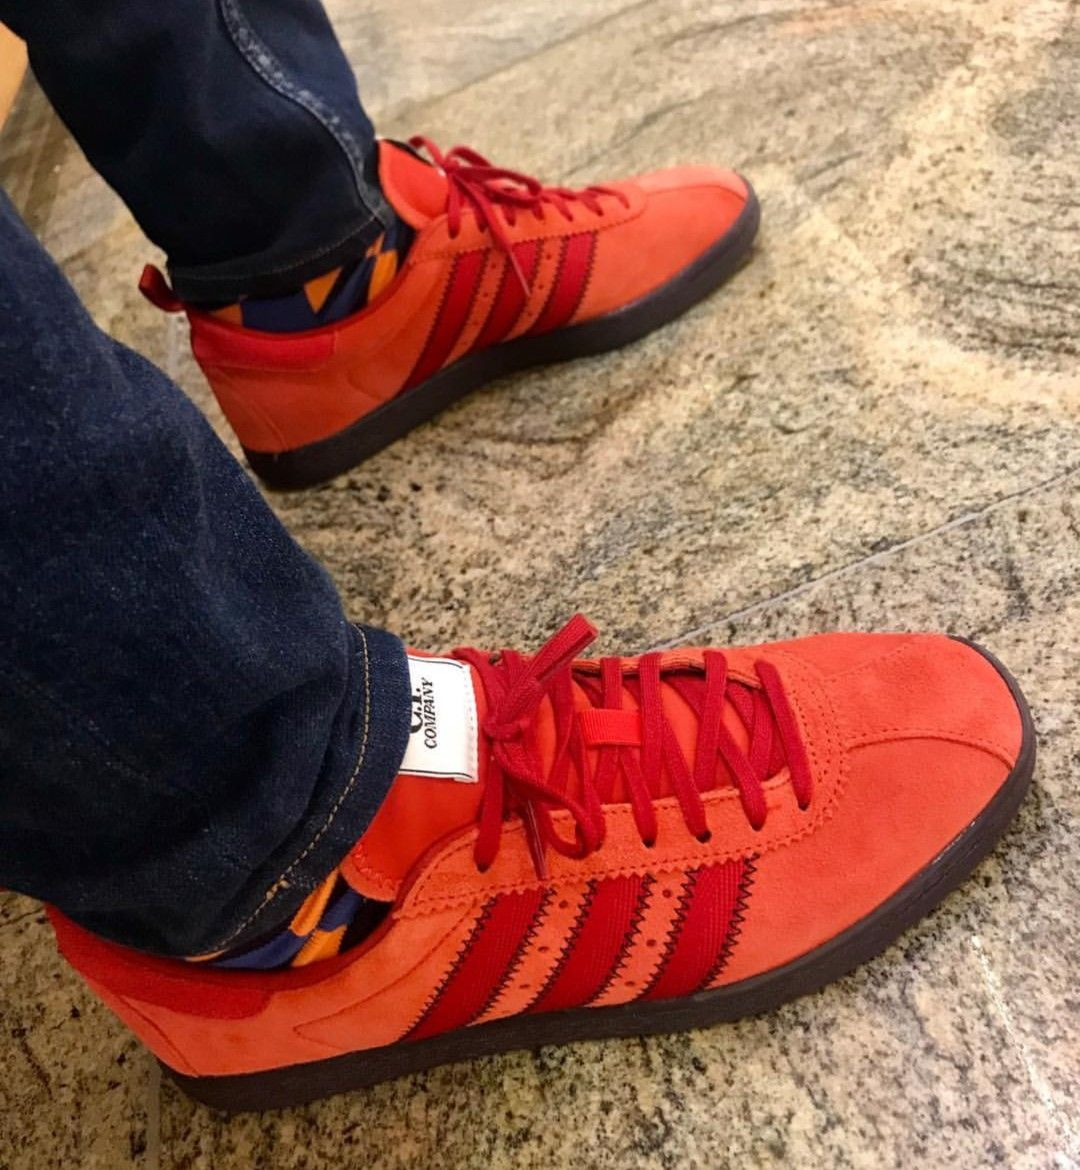 new concept 83ccb 2a29f Adidas - CP Company Tobacco on feet on the street | Adidas